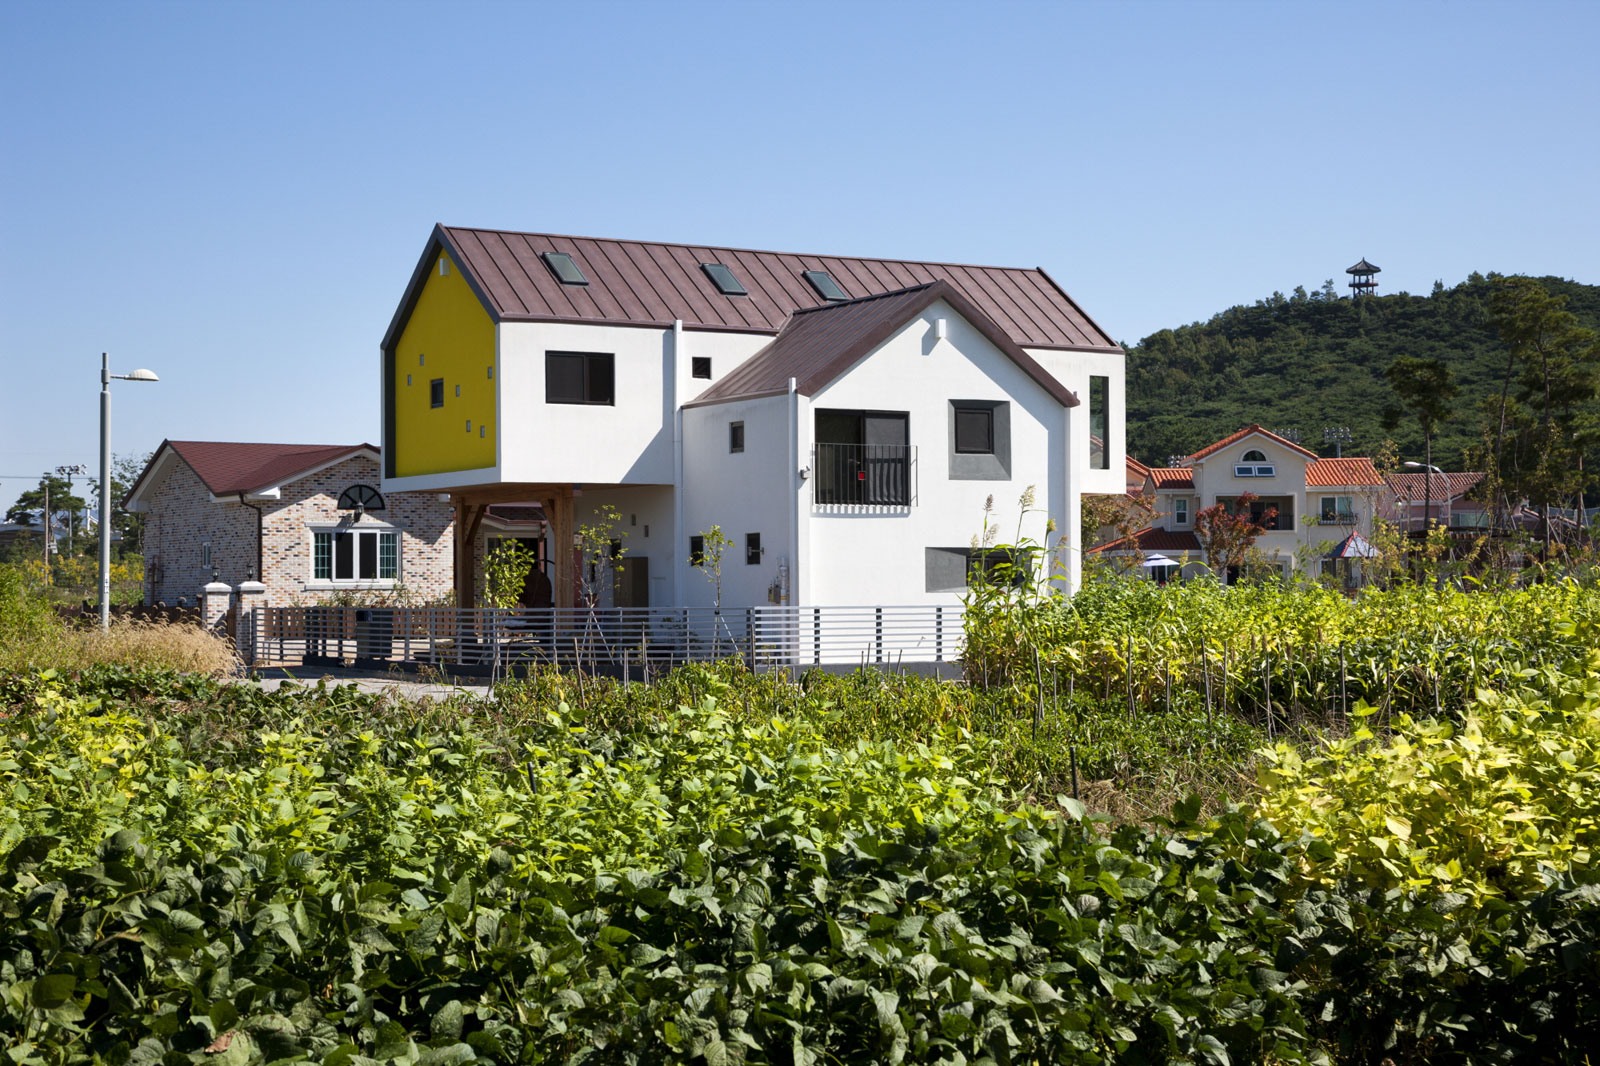 Iksan T Shaped House in South Korea by KDDH architects-01